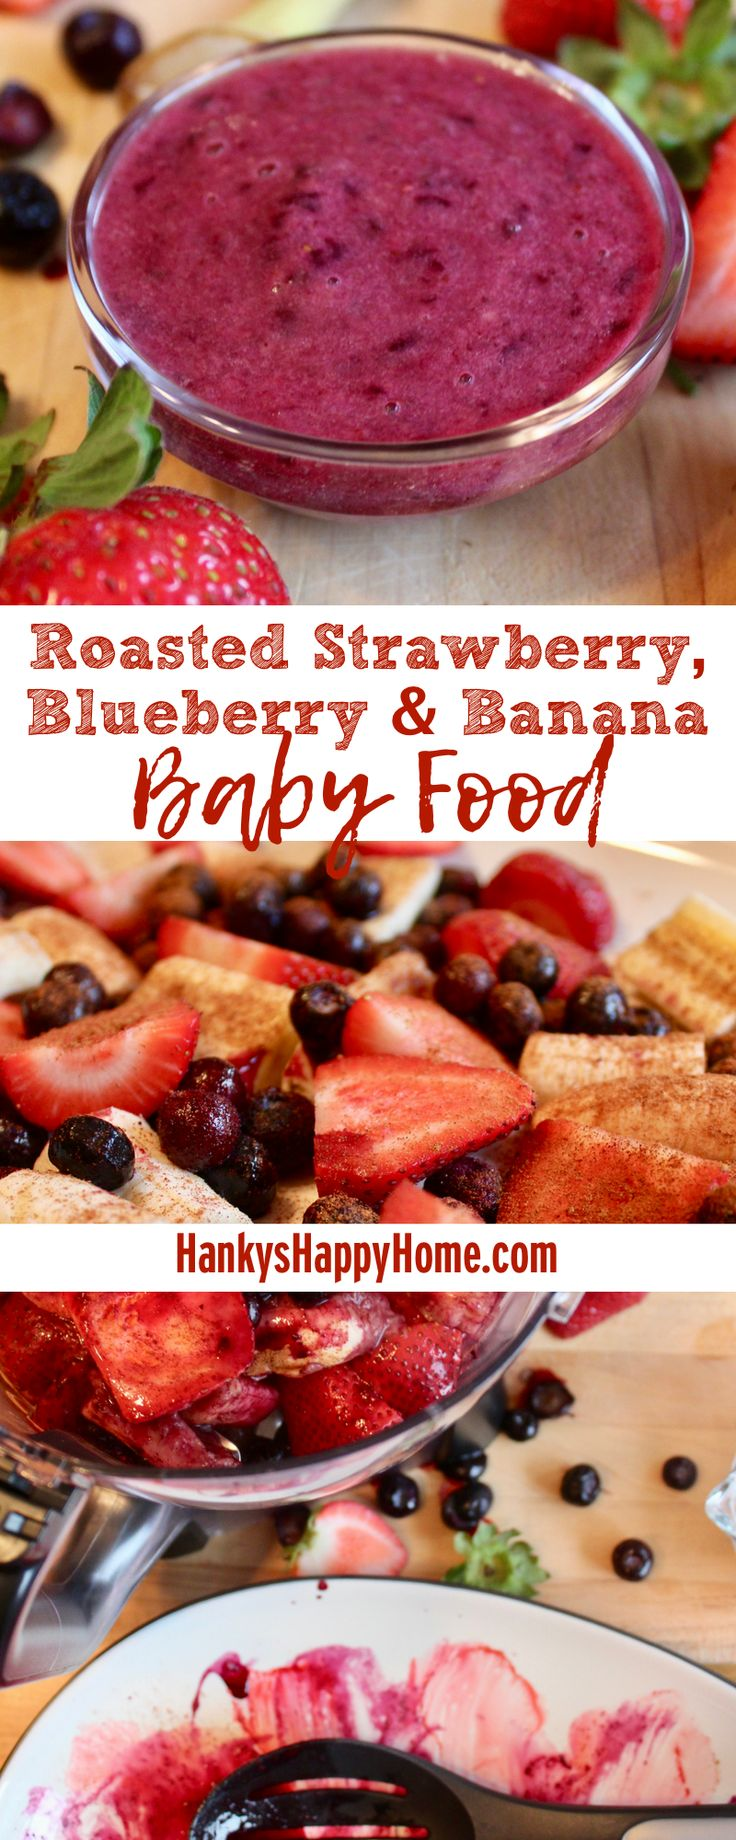 This Roasted Strawberry, Blueberry & Banana baby food is a colorful and yummy addition to any meal. Plus, it's packed with Vitamin C to boost the immune system.